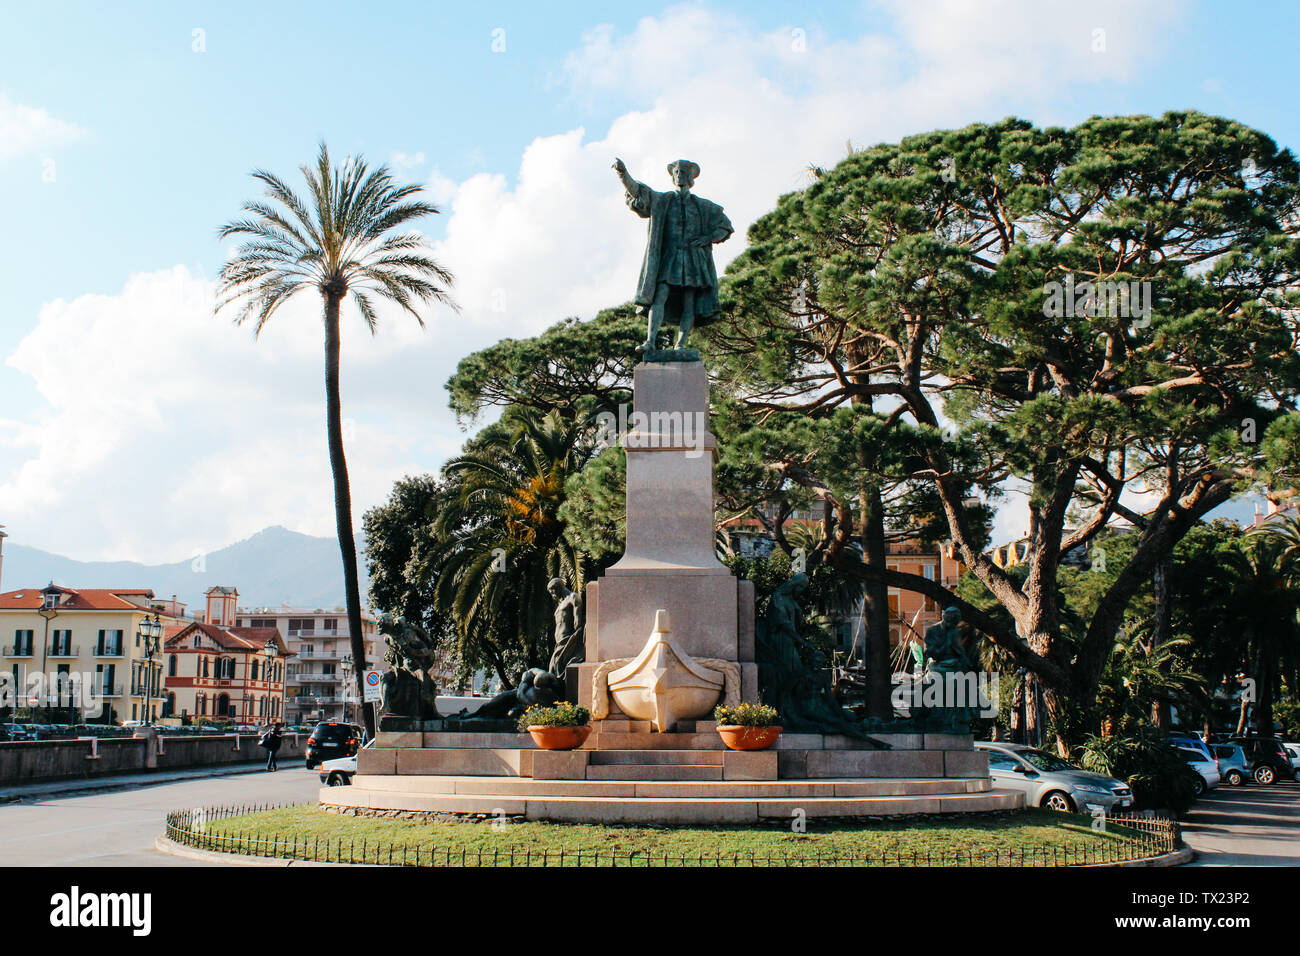 Rapallo, Italy - 03 27 2013: landmarks, View of the streets of Rapallo - Stock Image